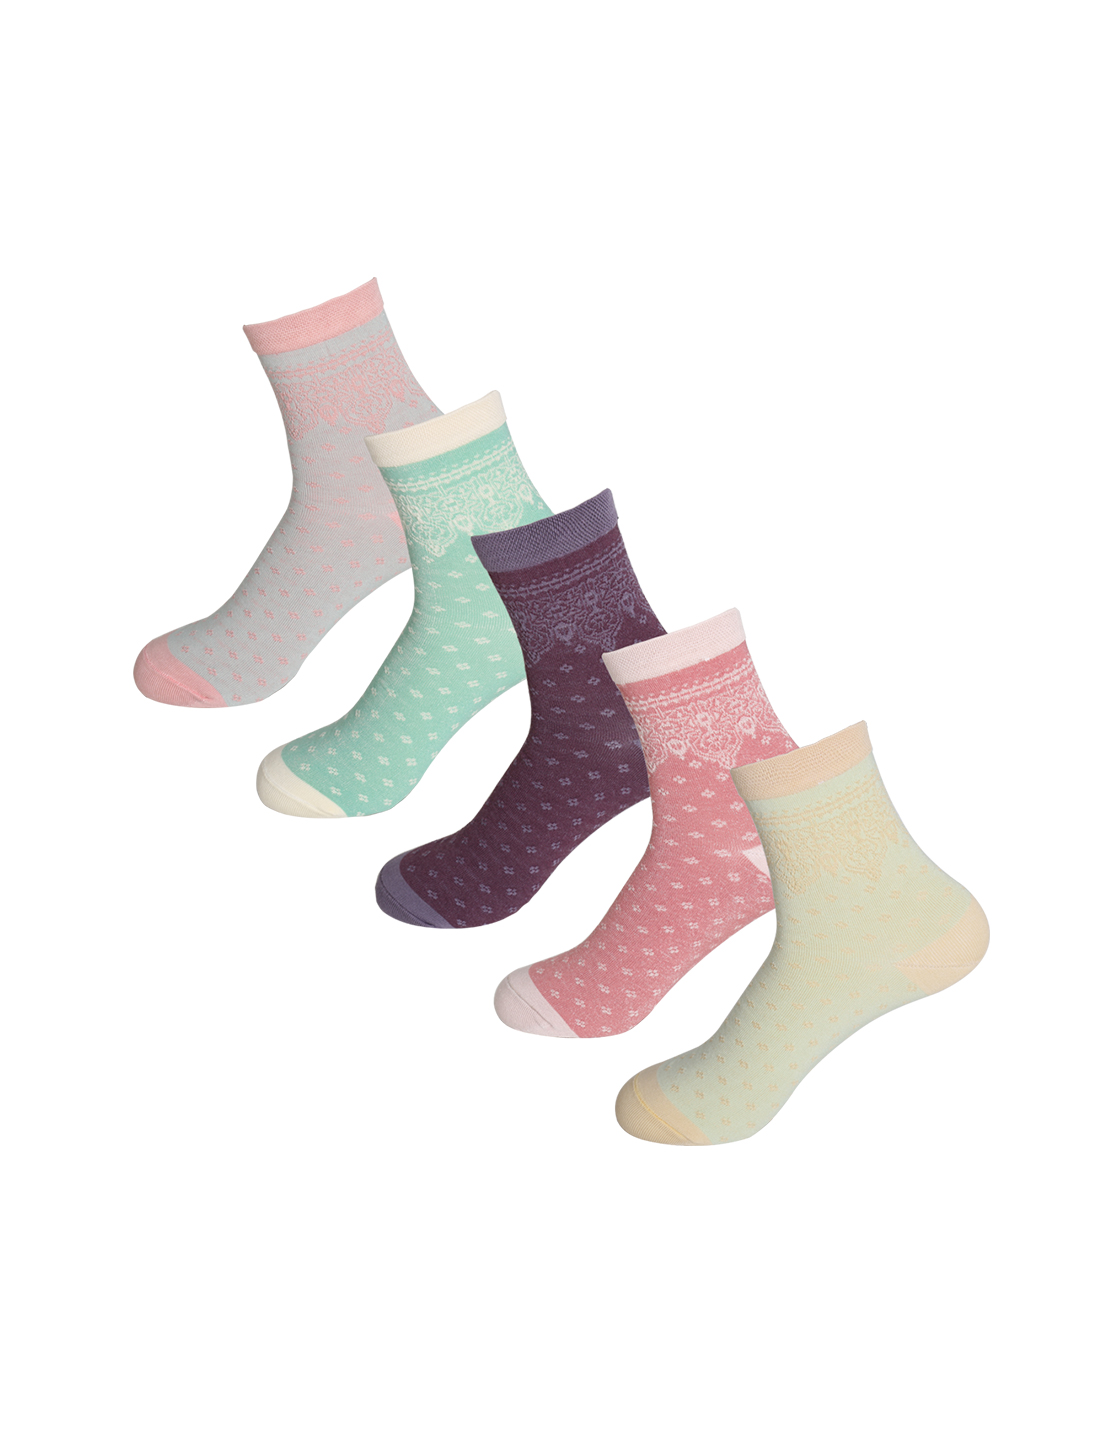 Women 5 Pack Stretchy Floral Embroidery Crew Socks Assorted 9-11